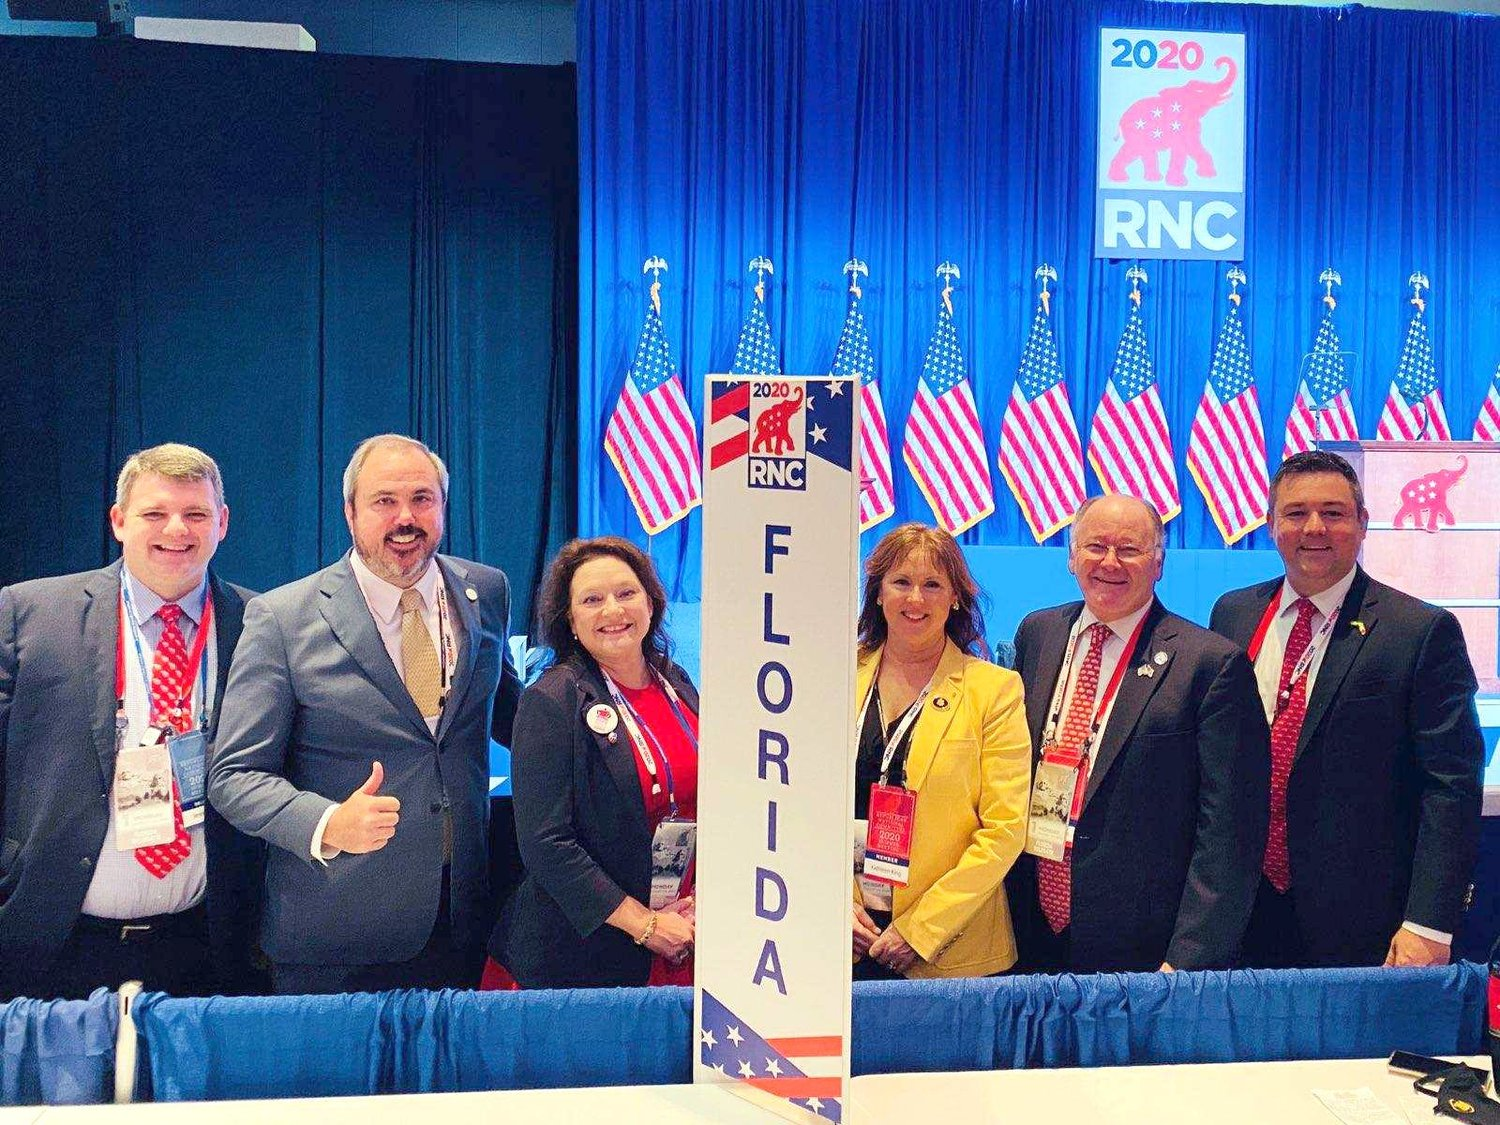 Kristy Banks, center, stands with the five other members of the Florida delegation at this week's Republican National Convention.